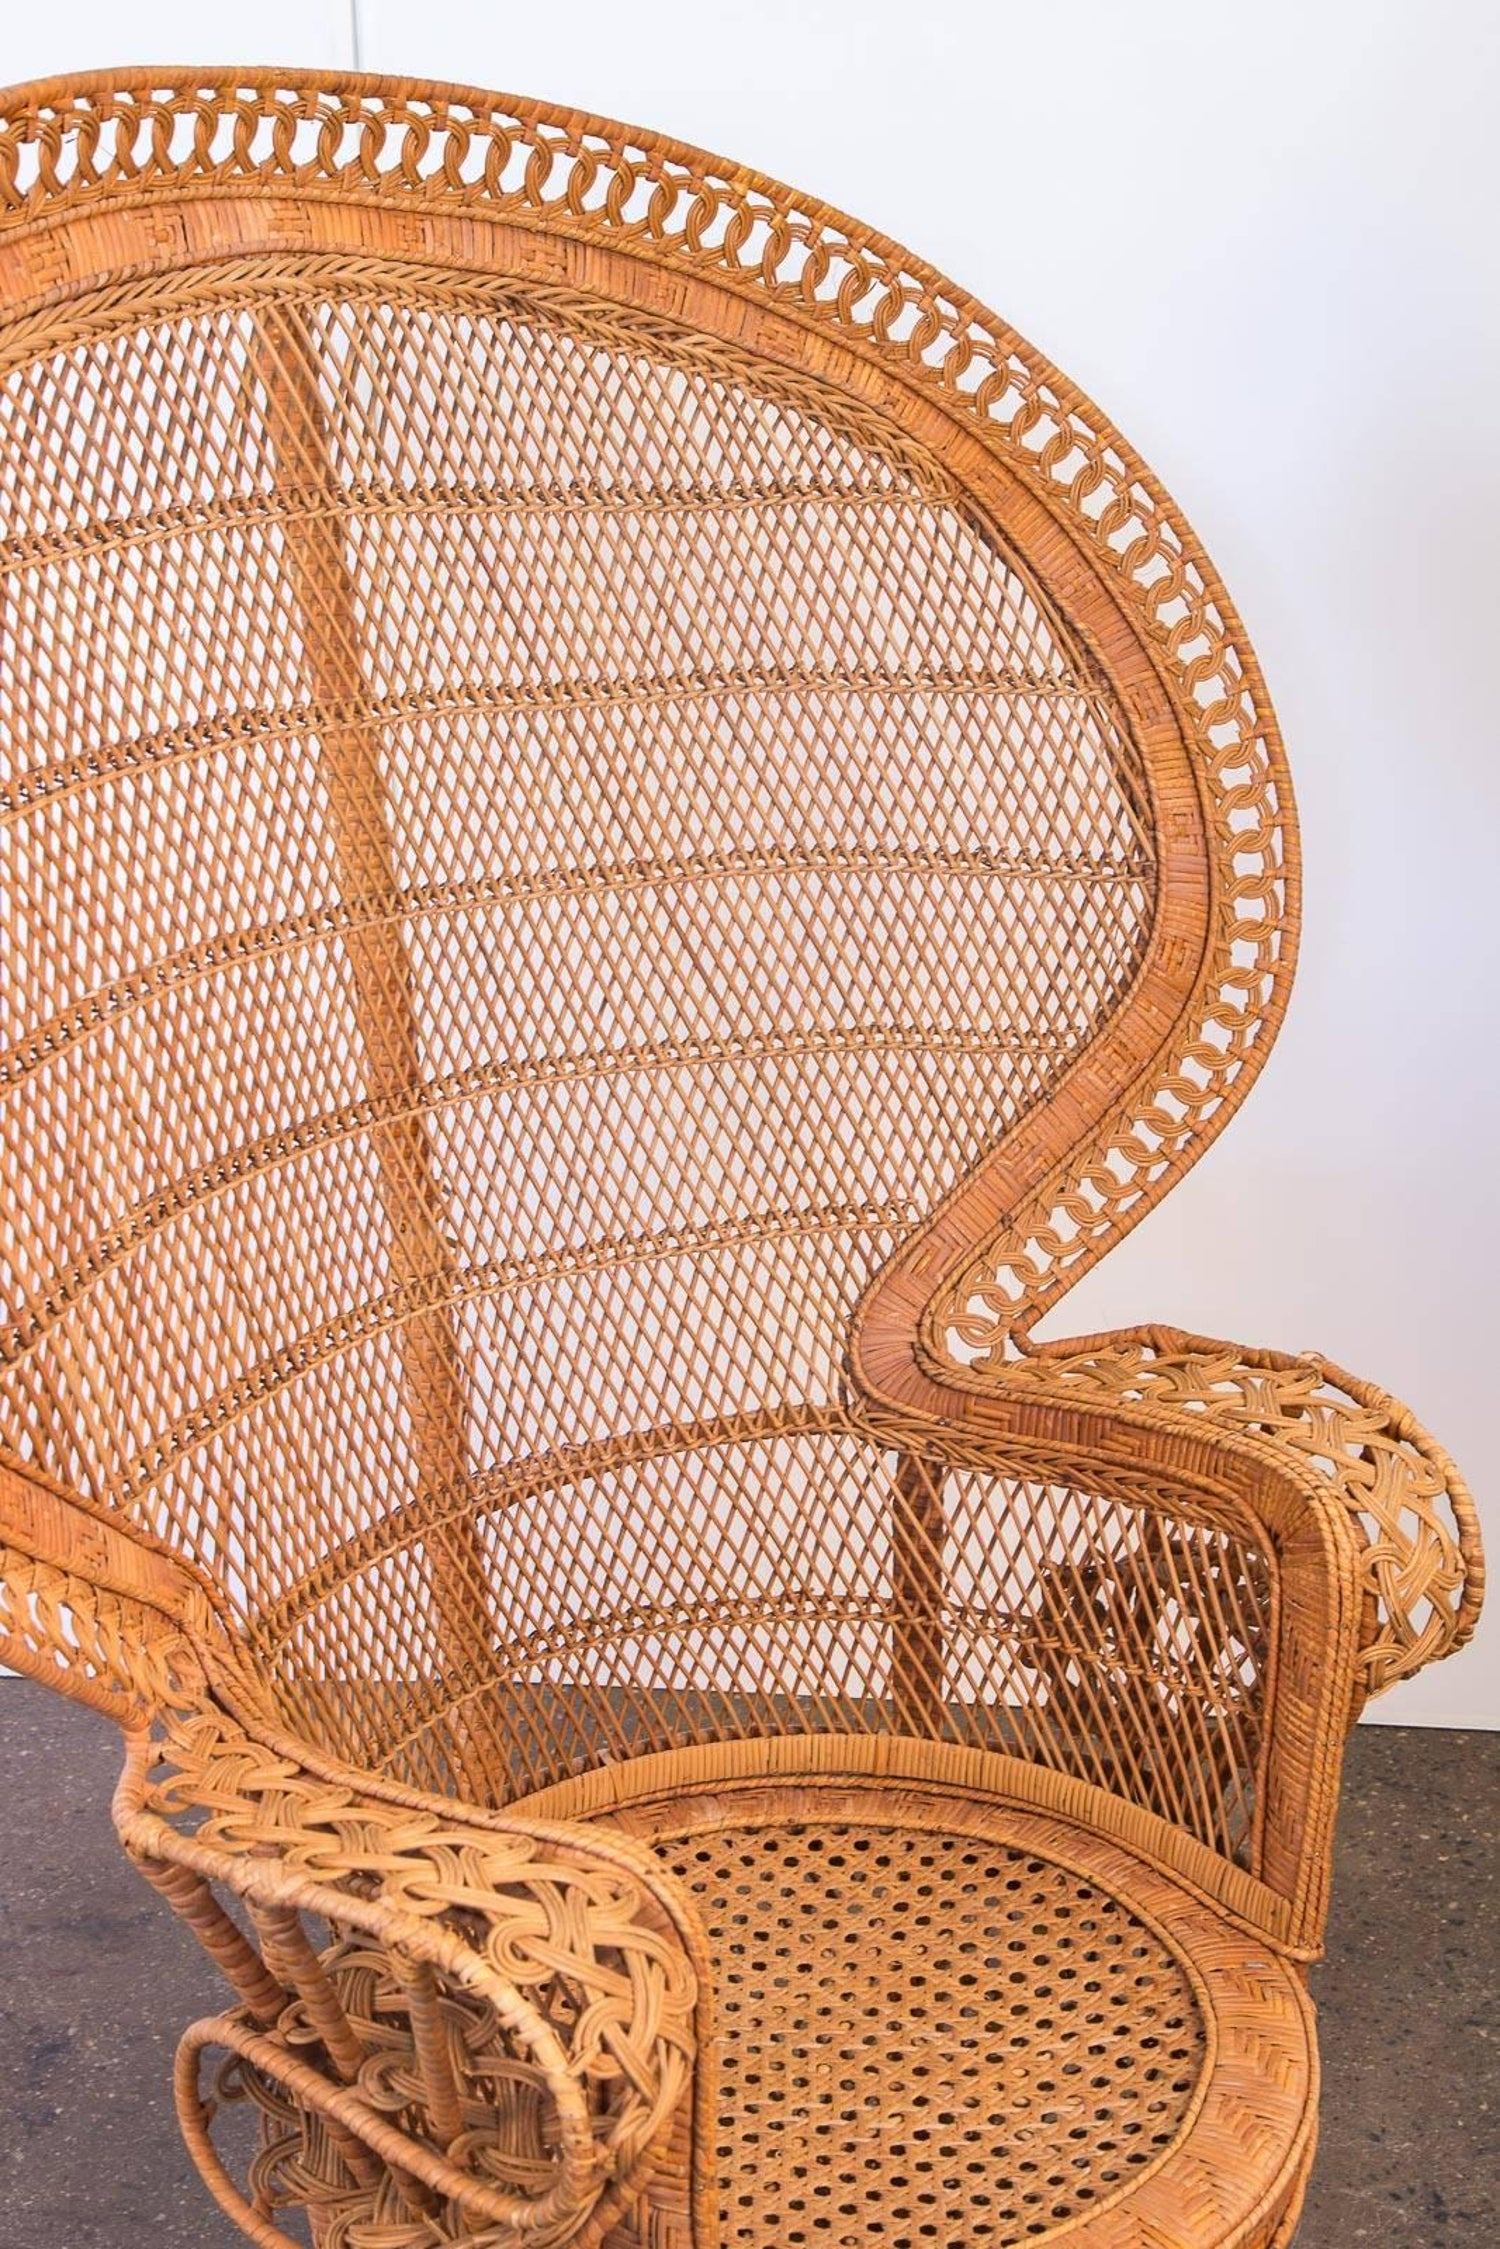 Emmanuelle Woven Rattan Peacock Chair For Sale at 1stdibs